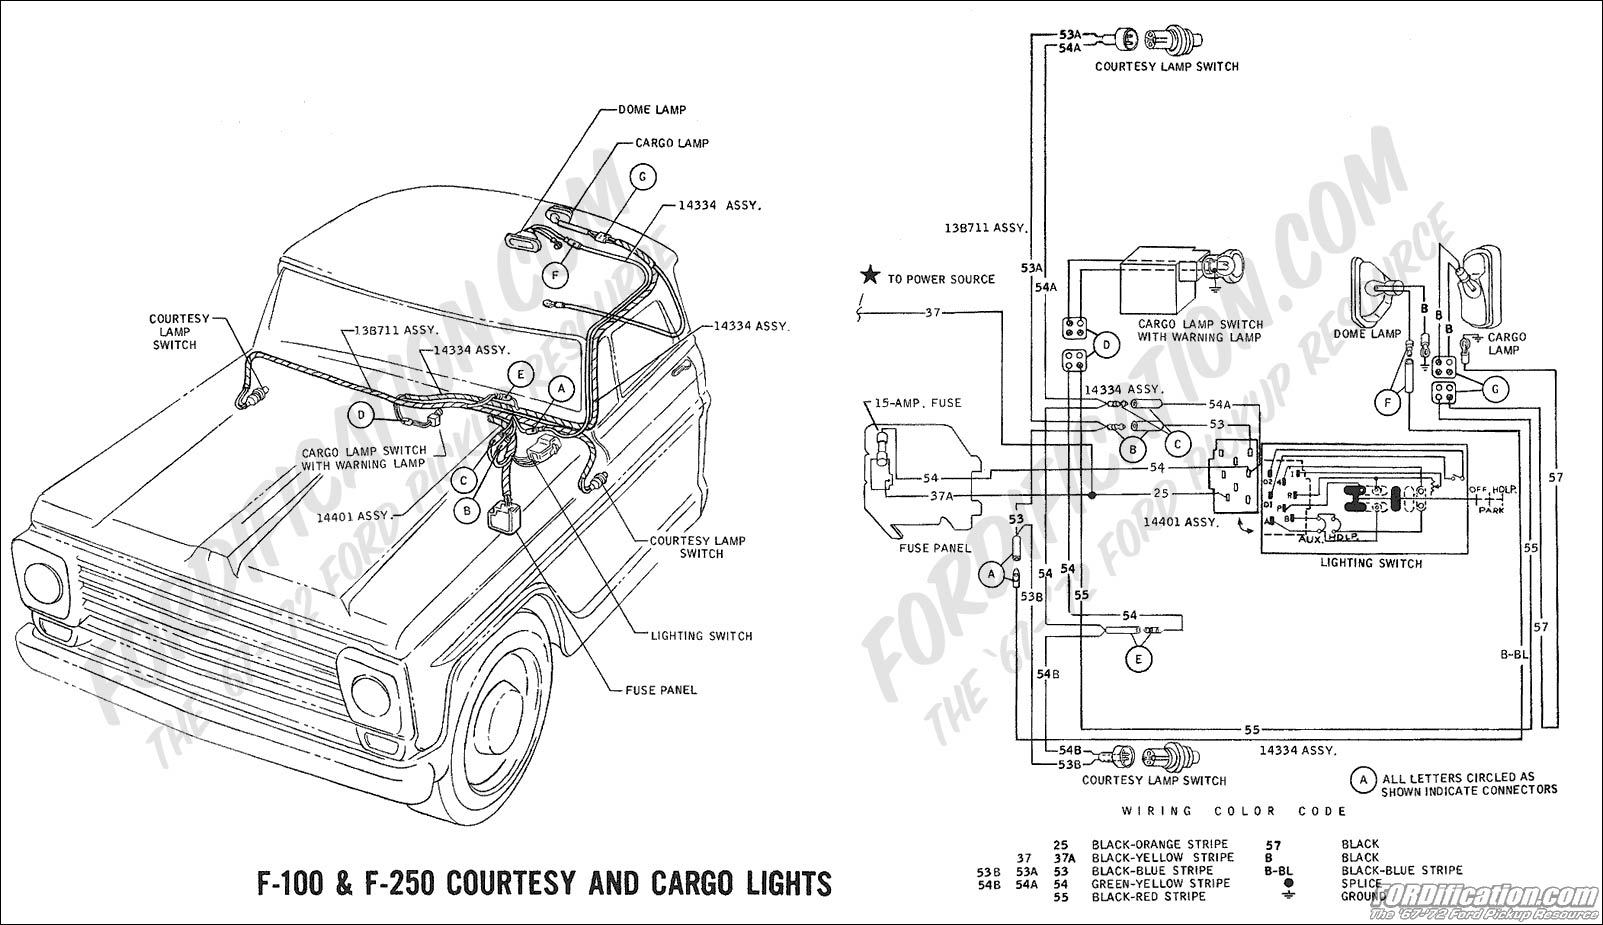 Ford Truck Technical Drawings And Schematics Section H Wiring 1977 Camaro Engine Diagram Rear Body Taillight 1969 F 100 250 Lights Model 99 01